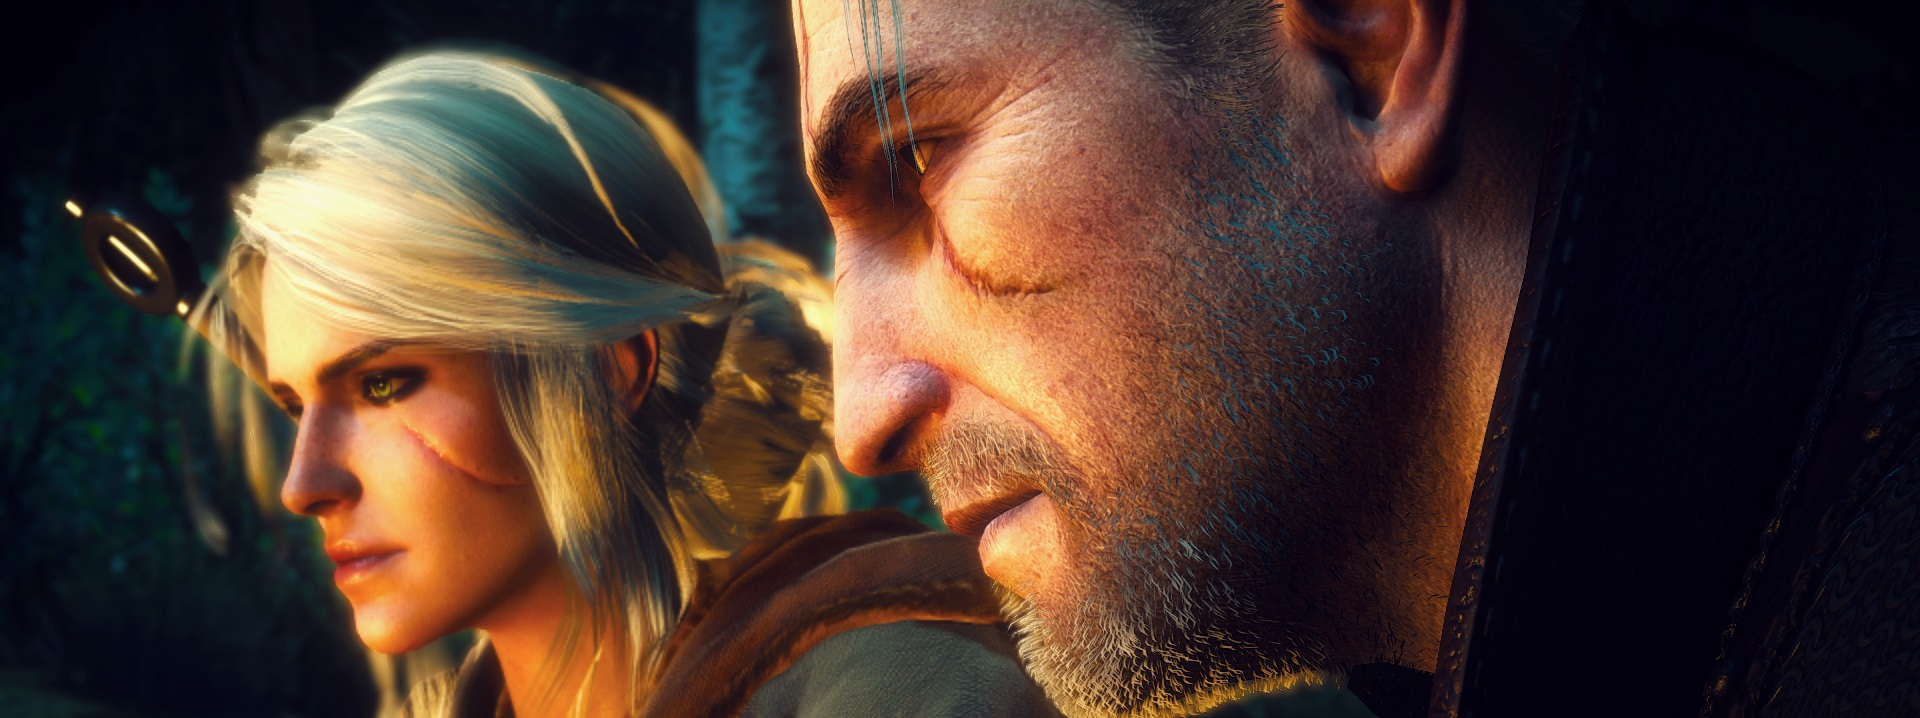 Geralt And Ciri at The Witcher 3 Nexus - Mods and community